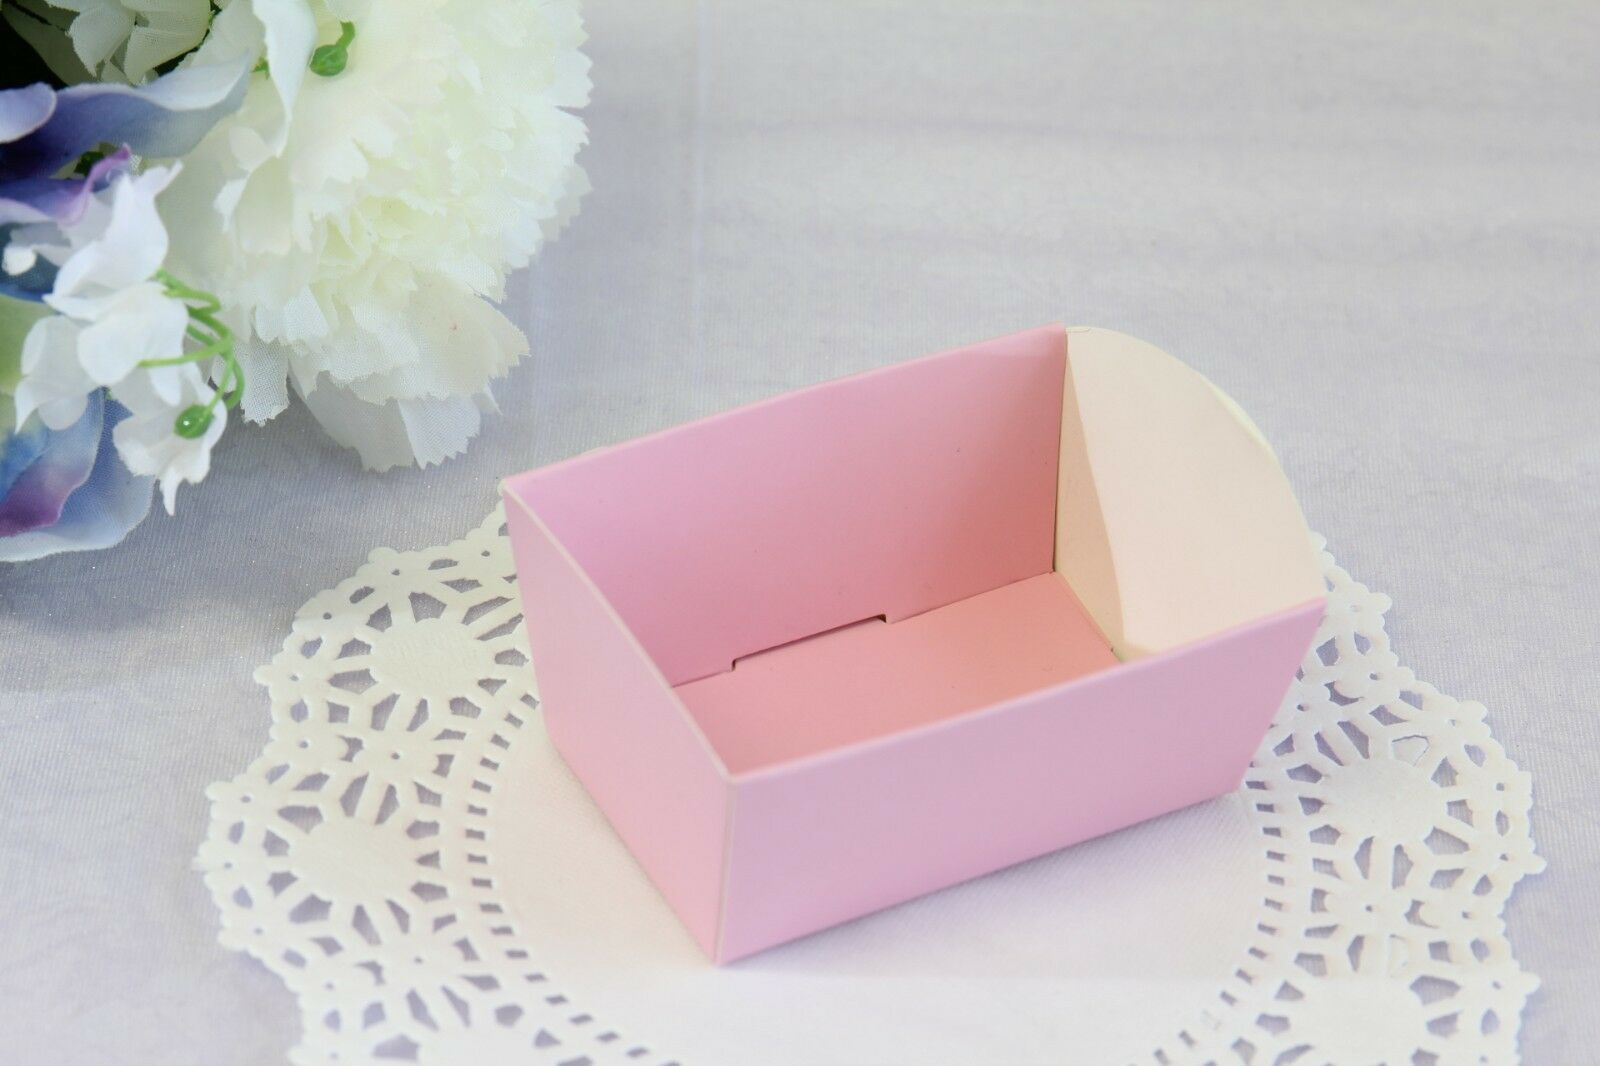 10x Mini Paper Candy Cookie Nut Trays Holders Cello Bag Base Party ...